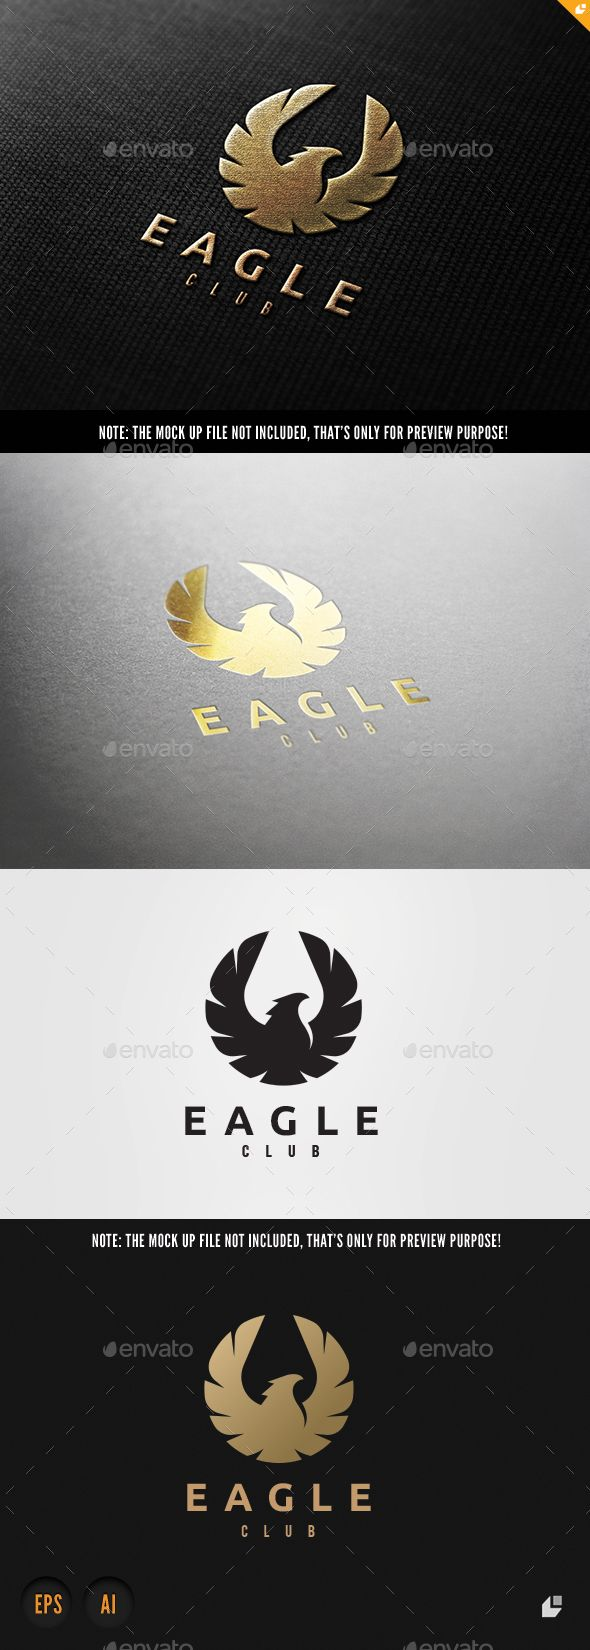 Eagle Club Logo Template Vector EPS, AI Illustrator. Download here: http://graphicriver.net/item/eagle-club/15919819?ref=ksioks